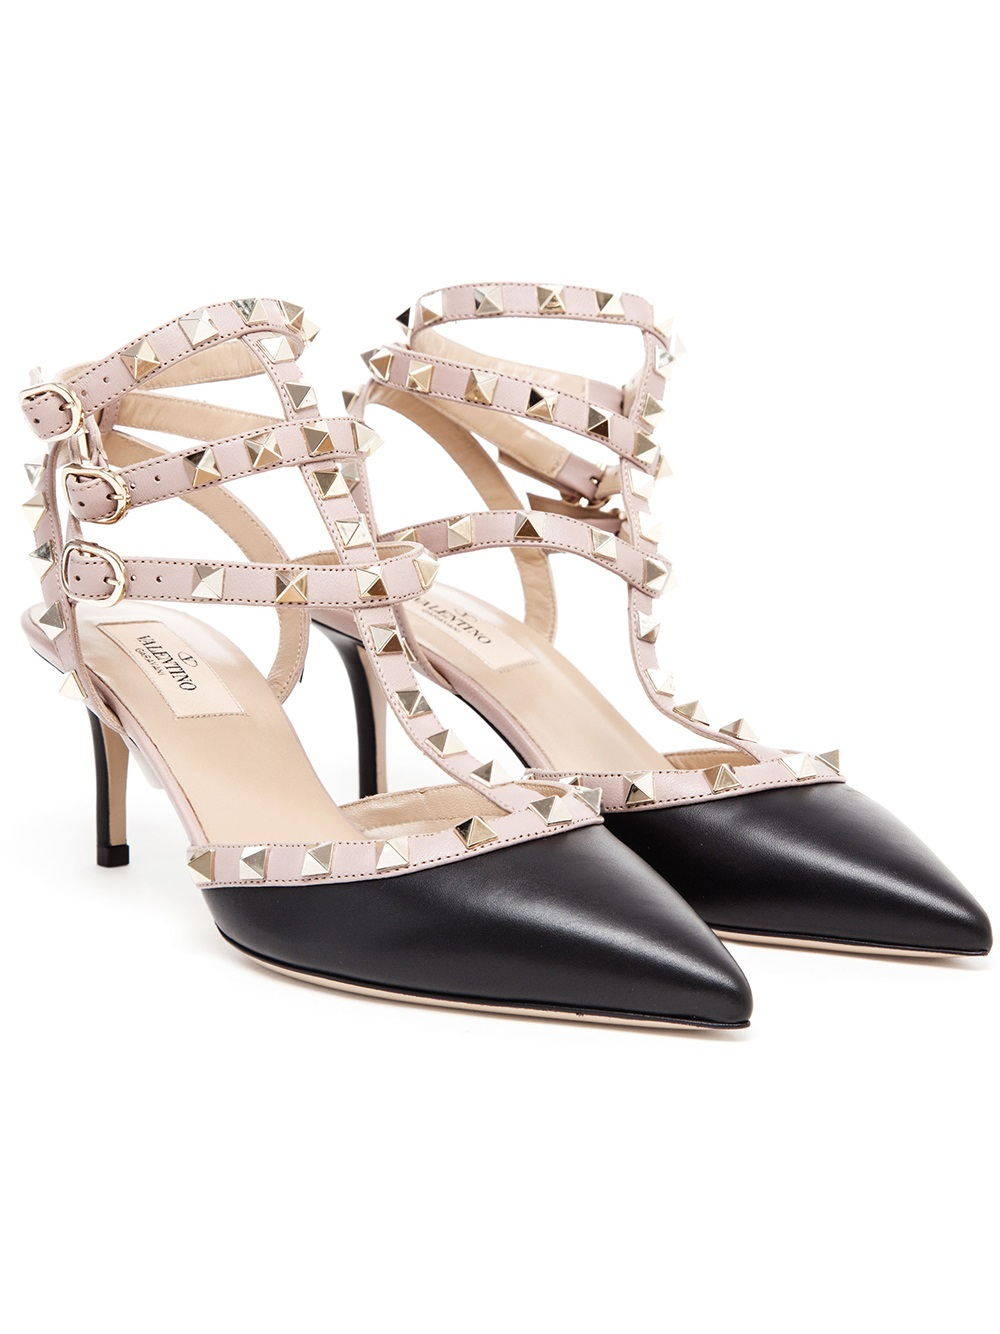 3811cac066e Lyst - Valentino Rockstud Leather Kitten Heels in Black